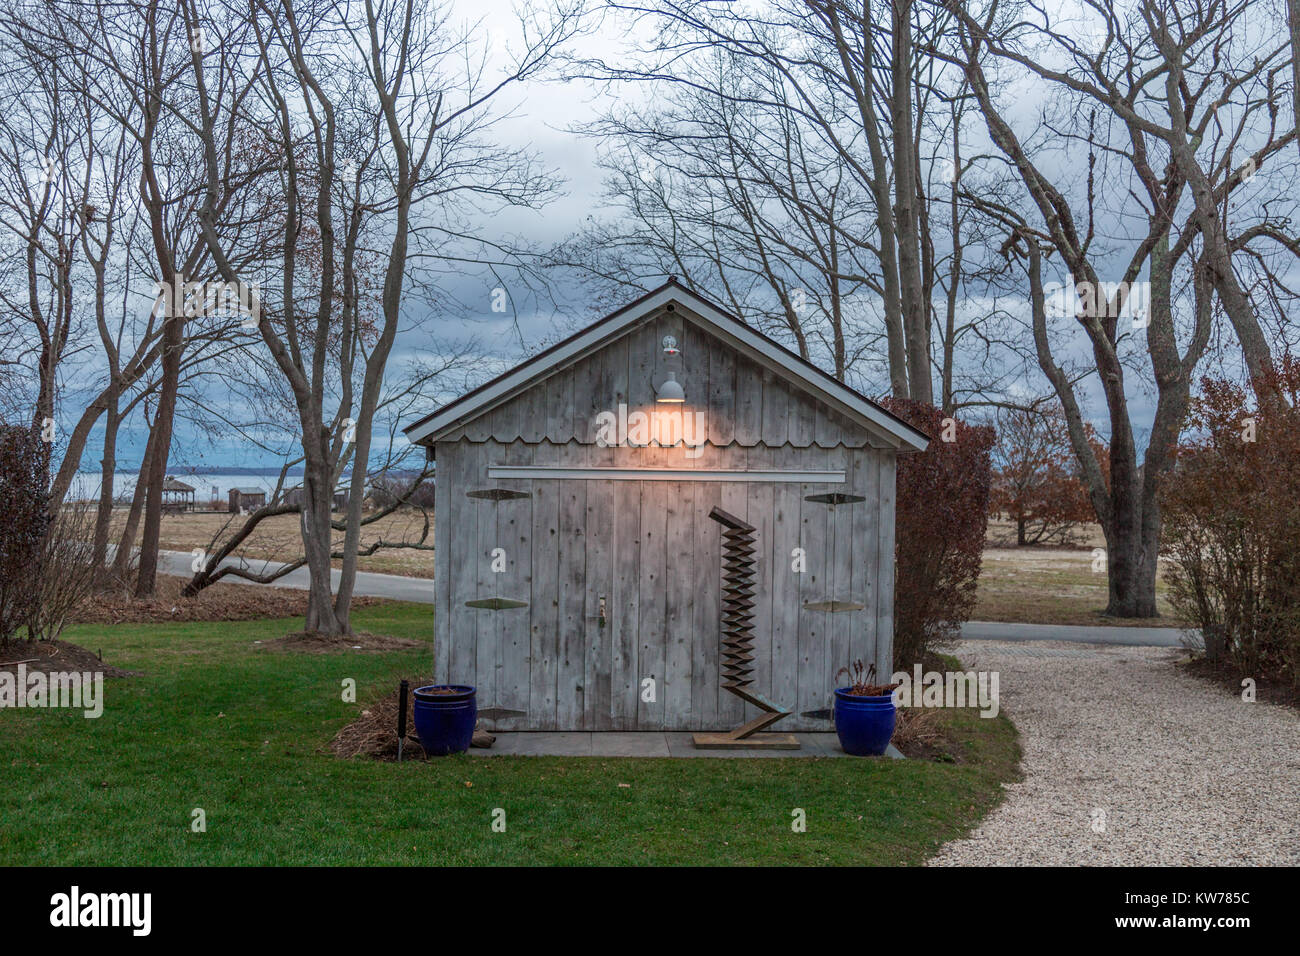 a small shed with a bronze sculpture in front of it in sag harbor, ny - Stock Image